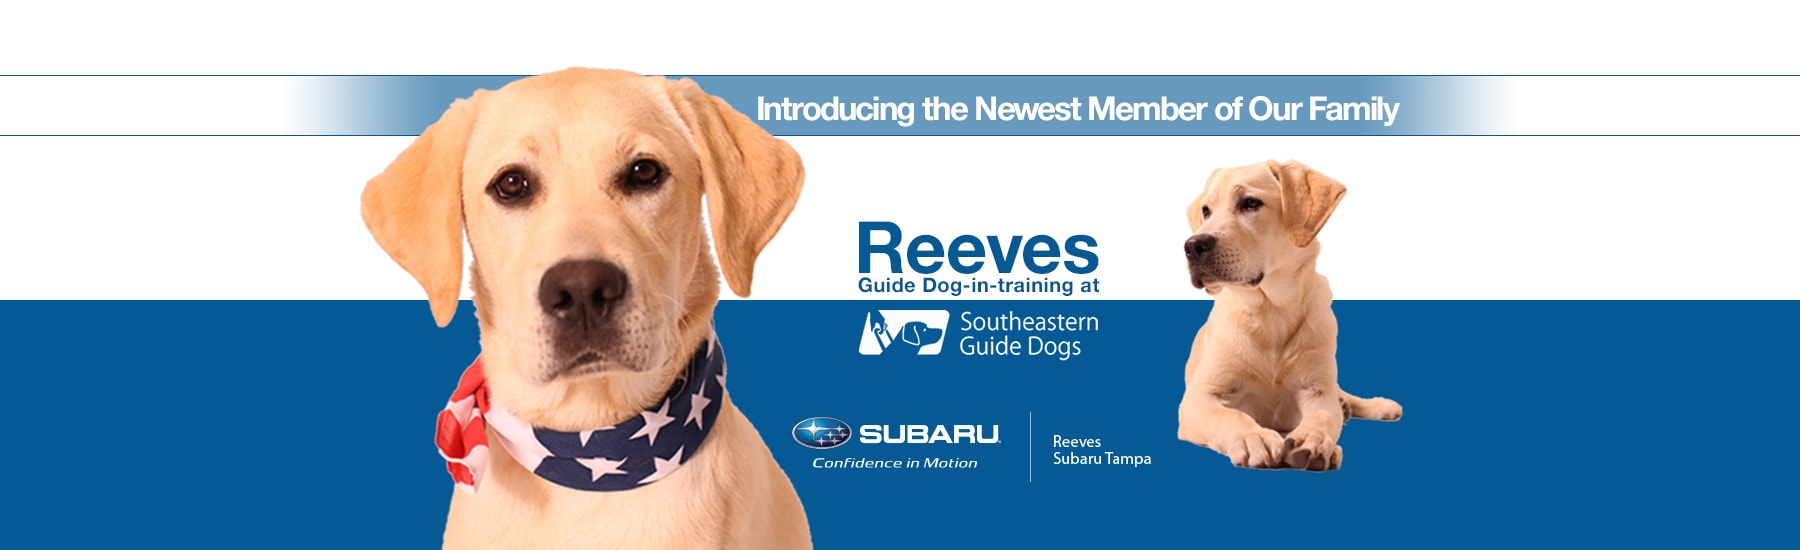 Reeves Guide Dog